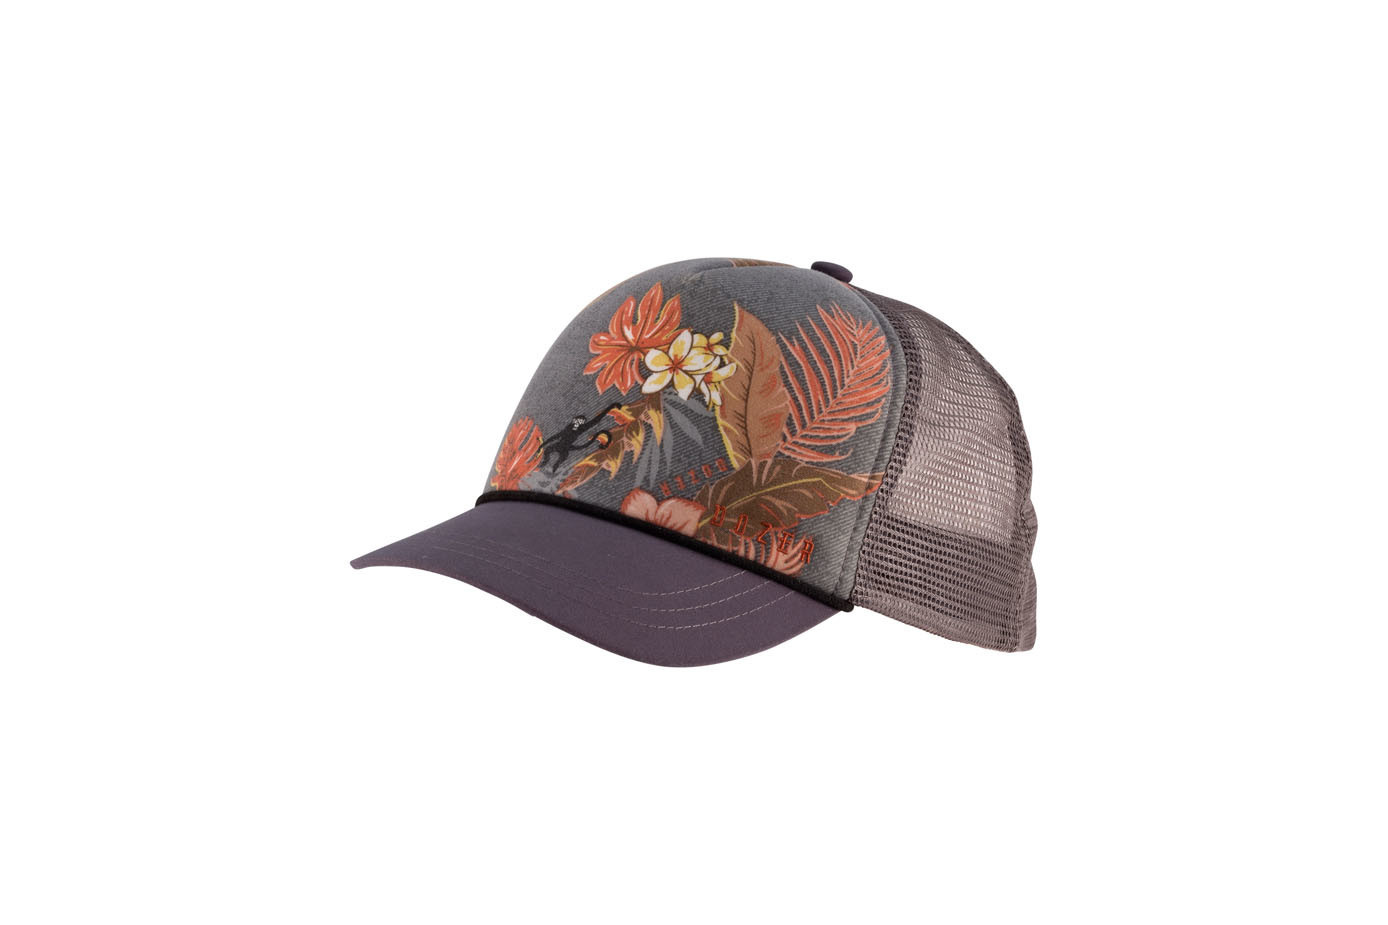 Dozer Dozer Boys Trucker Cap - Jacob Charcoal